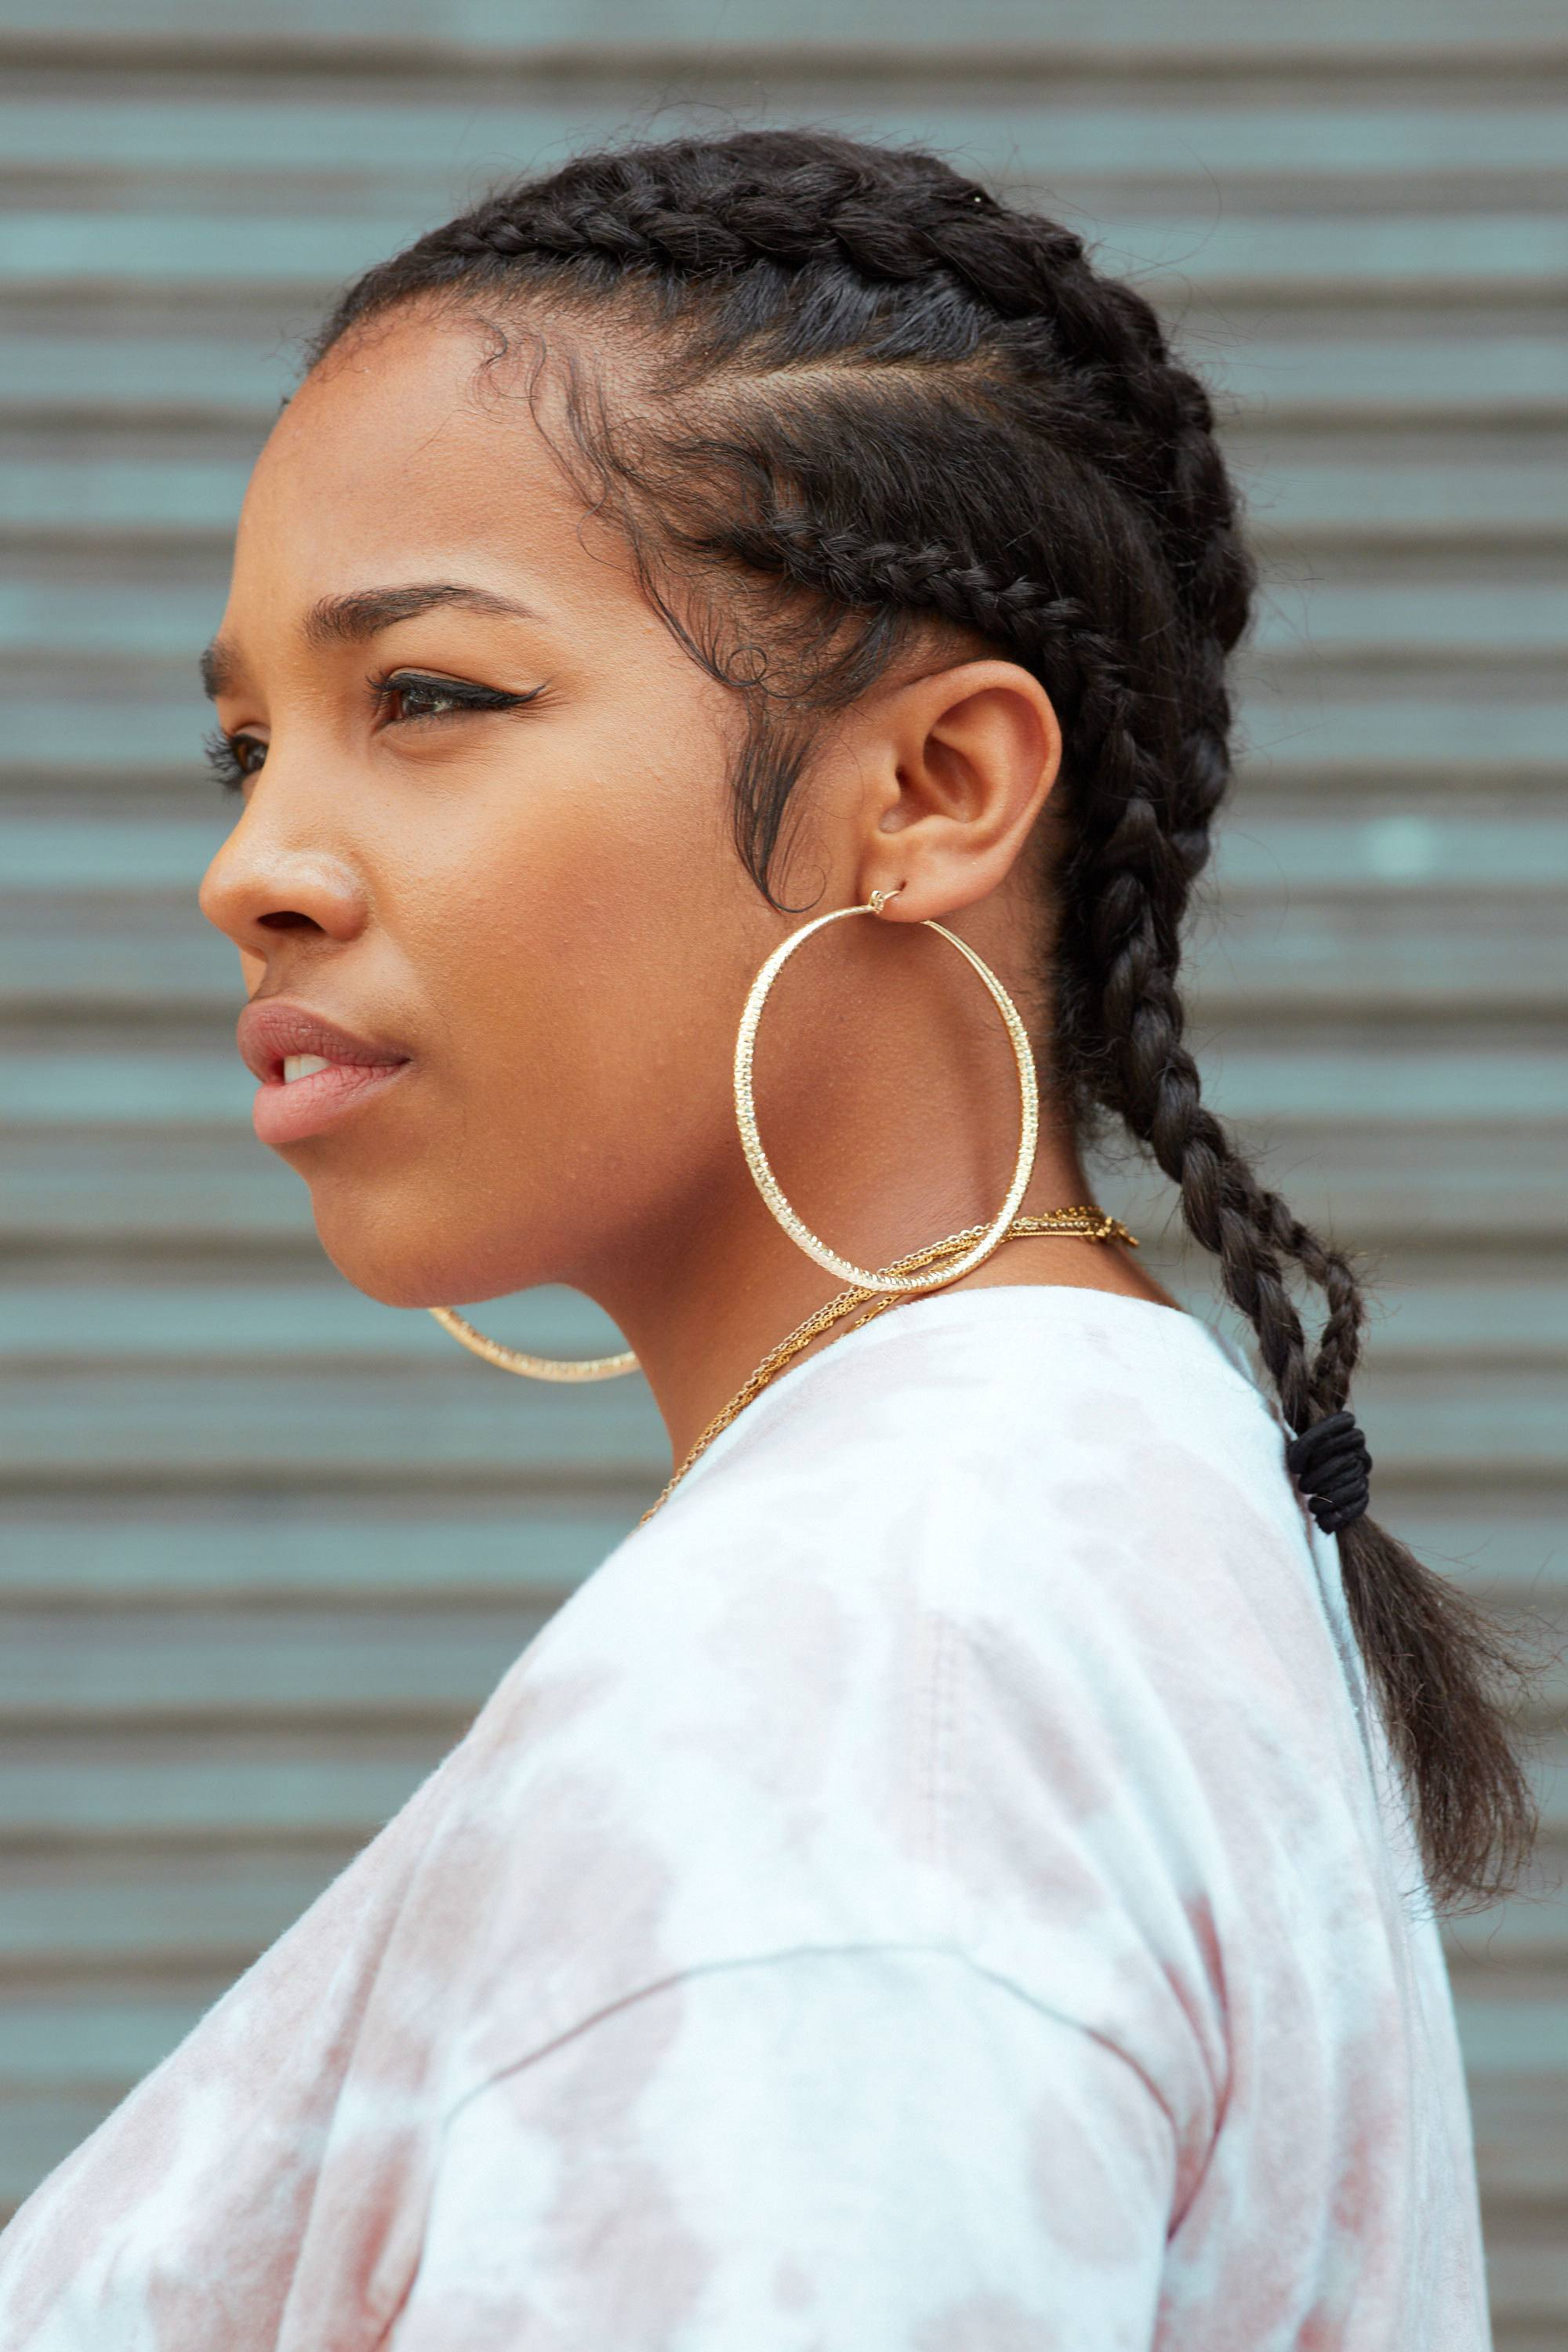 black women hairstyles: close up shot of woman with dark brown hair fashioned into cornrows, wearing big hoop earrings and a white top, posing against a green background